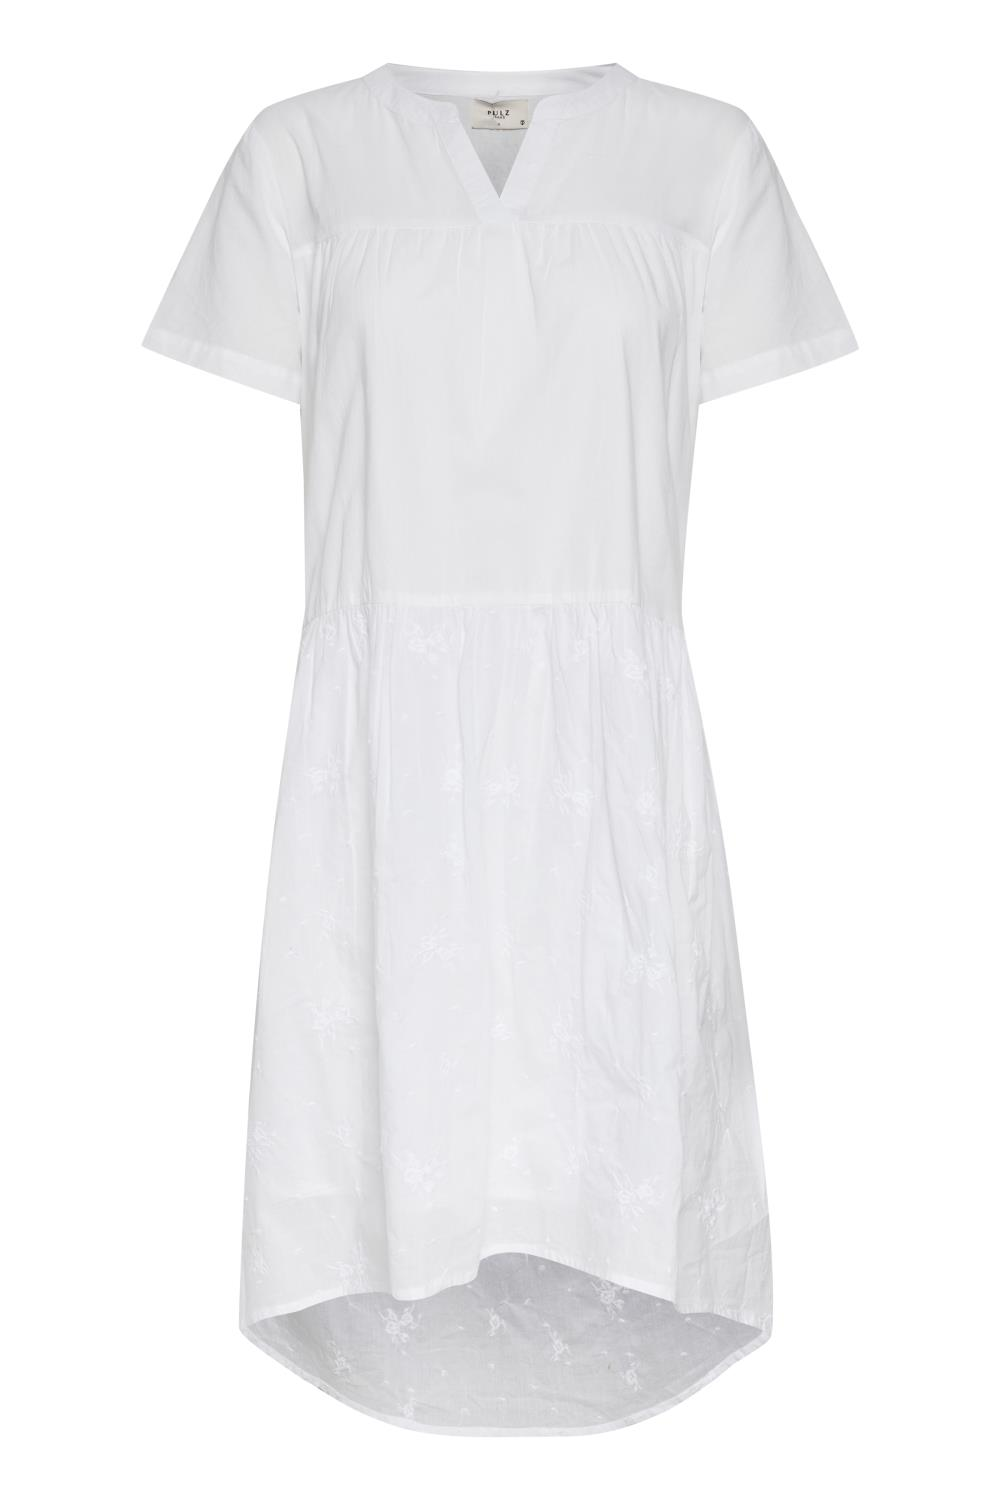 Pulz Vanessa dress, bright white